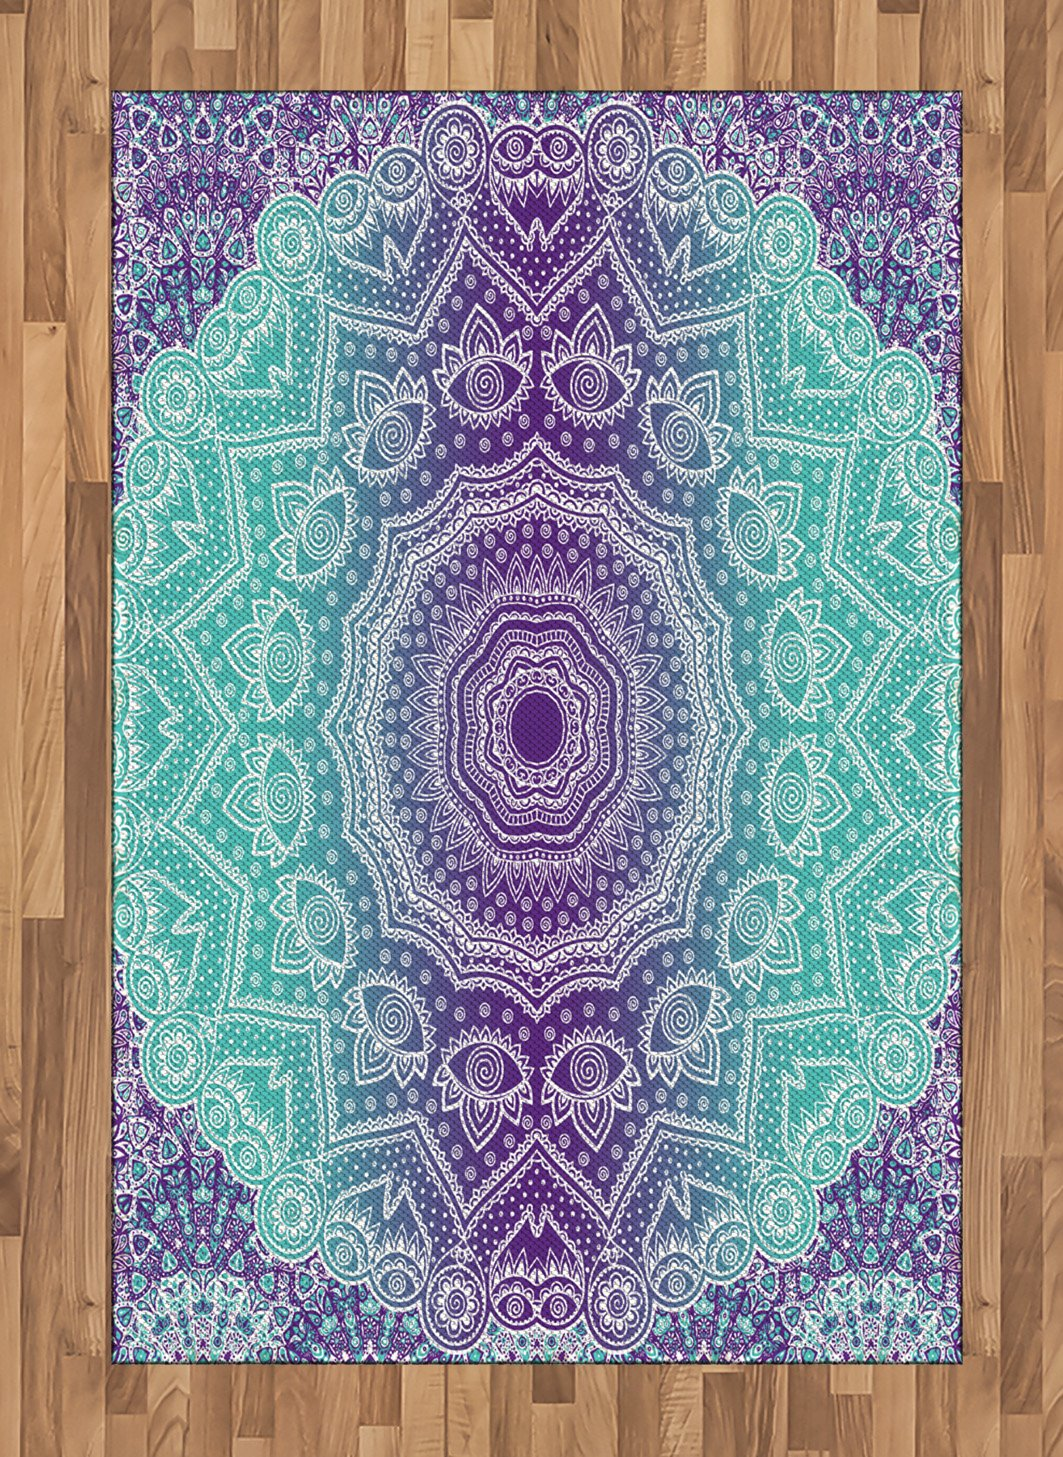 Ambesonne Purple and Turquoise Area Rug, Hippie Ombre Mandala Inner Peace and Meditation with Ornamental Art, Flat Woven Accent Rug for Living Room Bedroom Dining Room, 4 X 5.7 FT, Purple Aqua